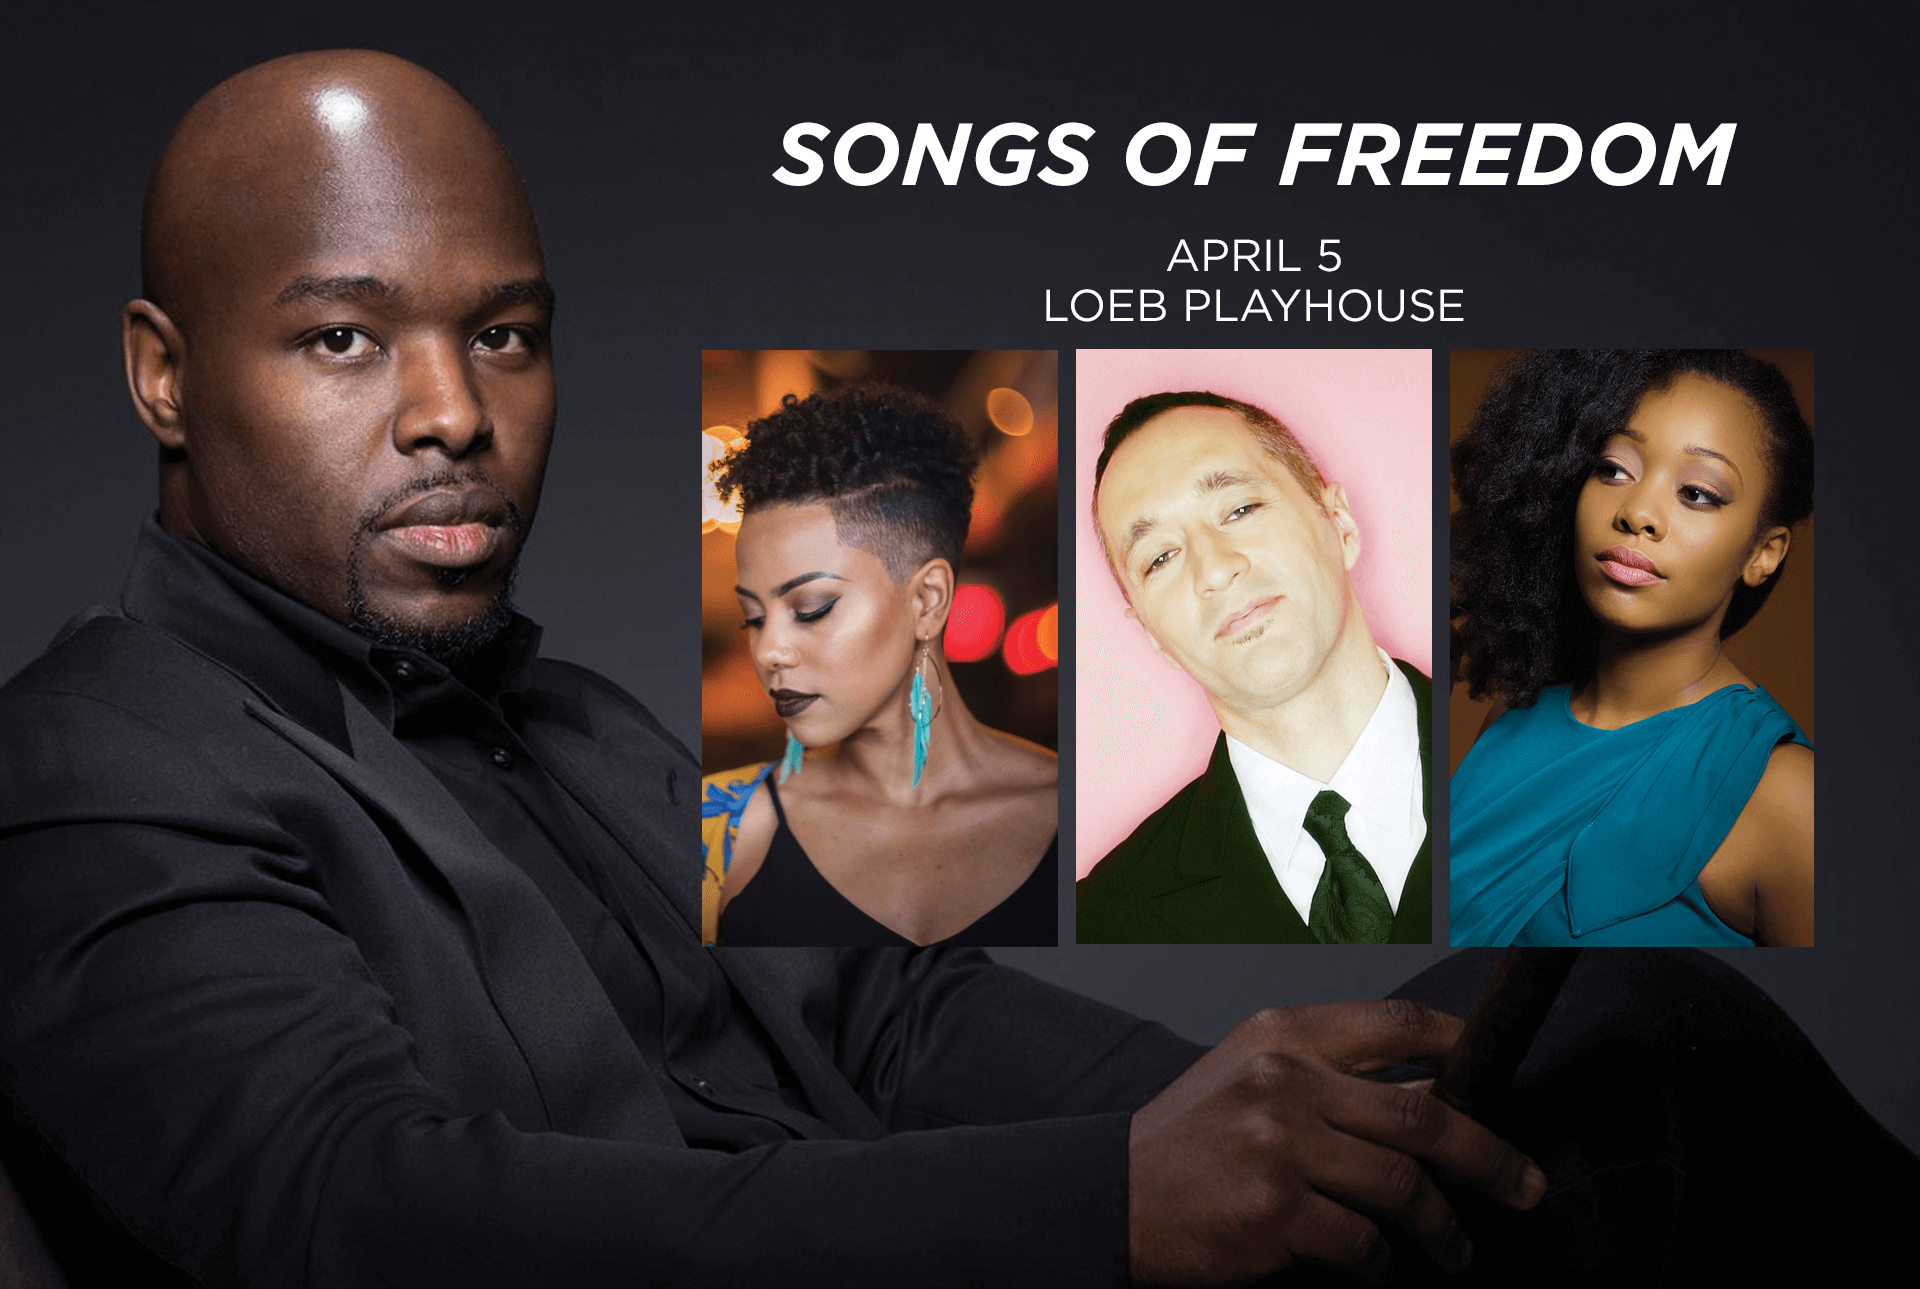 Songs of Freedom, April 5, 2018 Loeb Playhouse